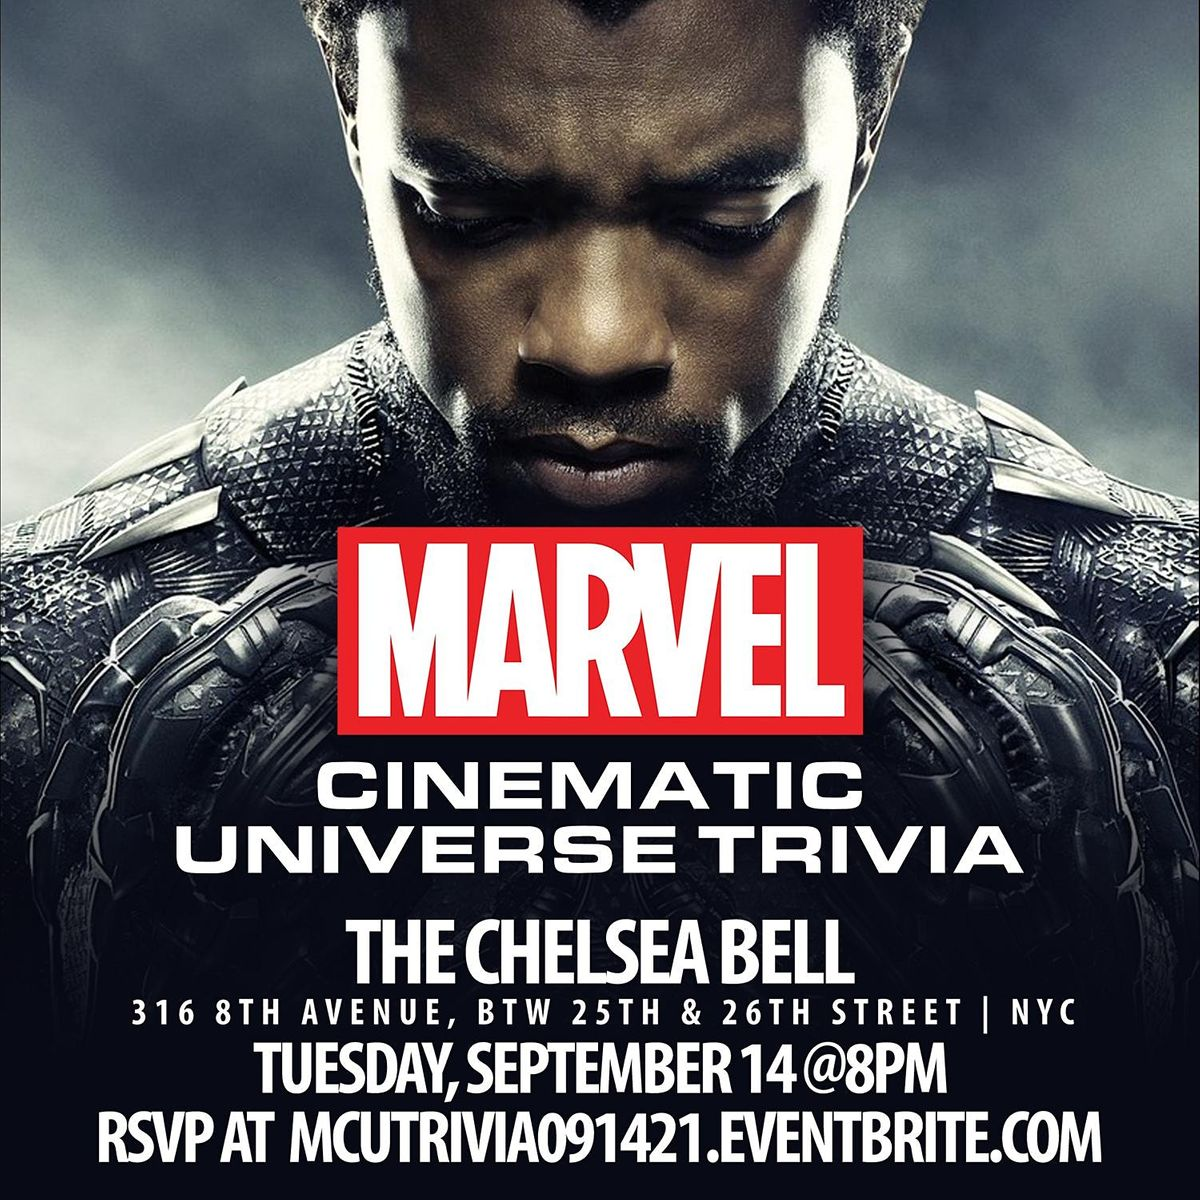 Marvel Cinematic Universe Trivia | Event in New York | AllEvents.in